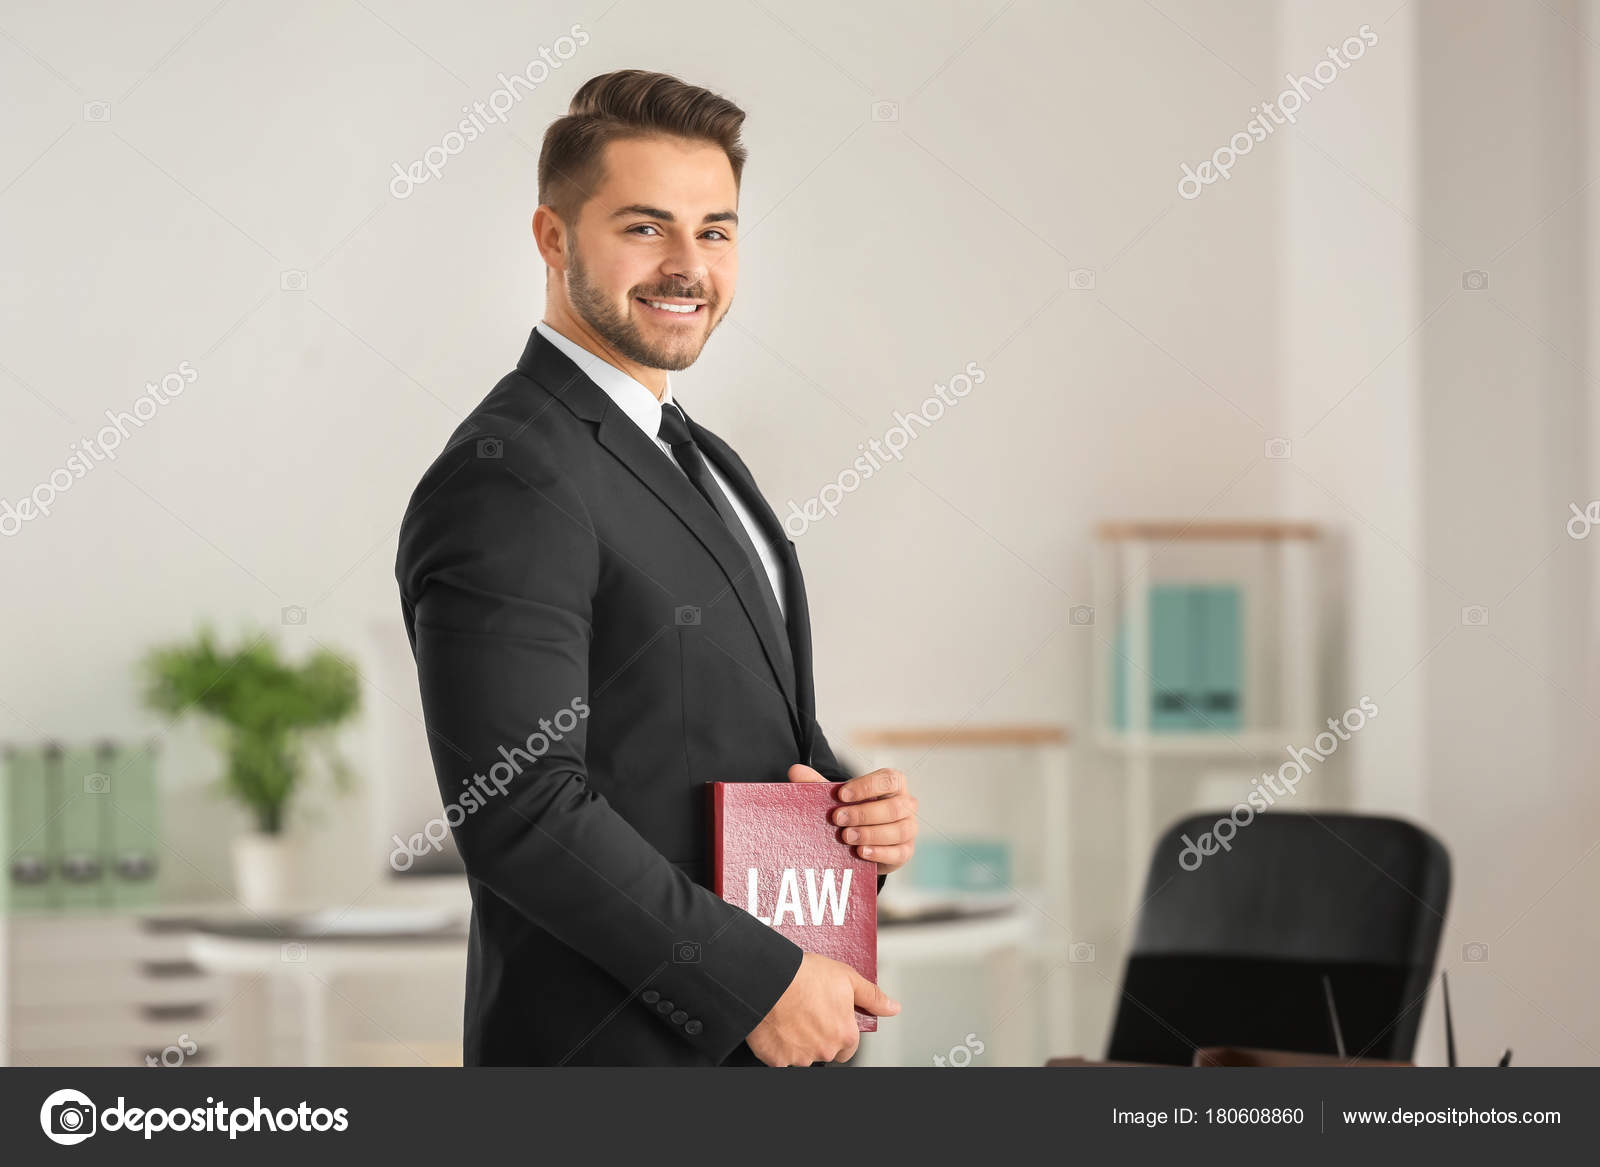 Handsome Young Lawyer Office — Stock Photo © belchonock #180608860